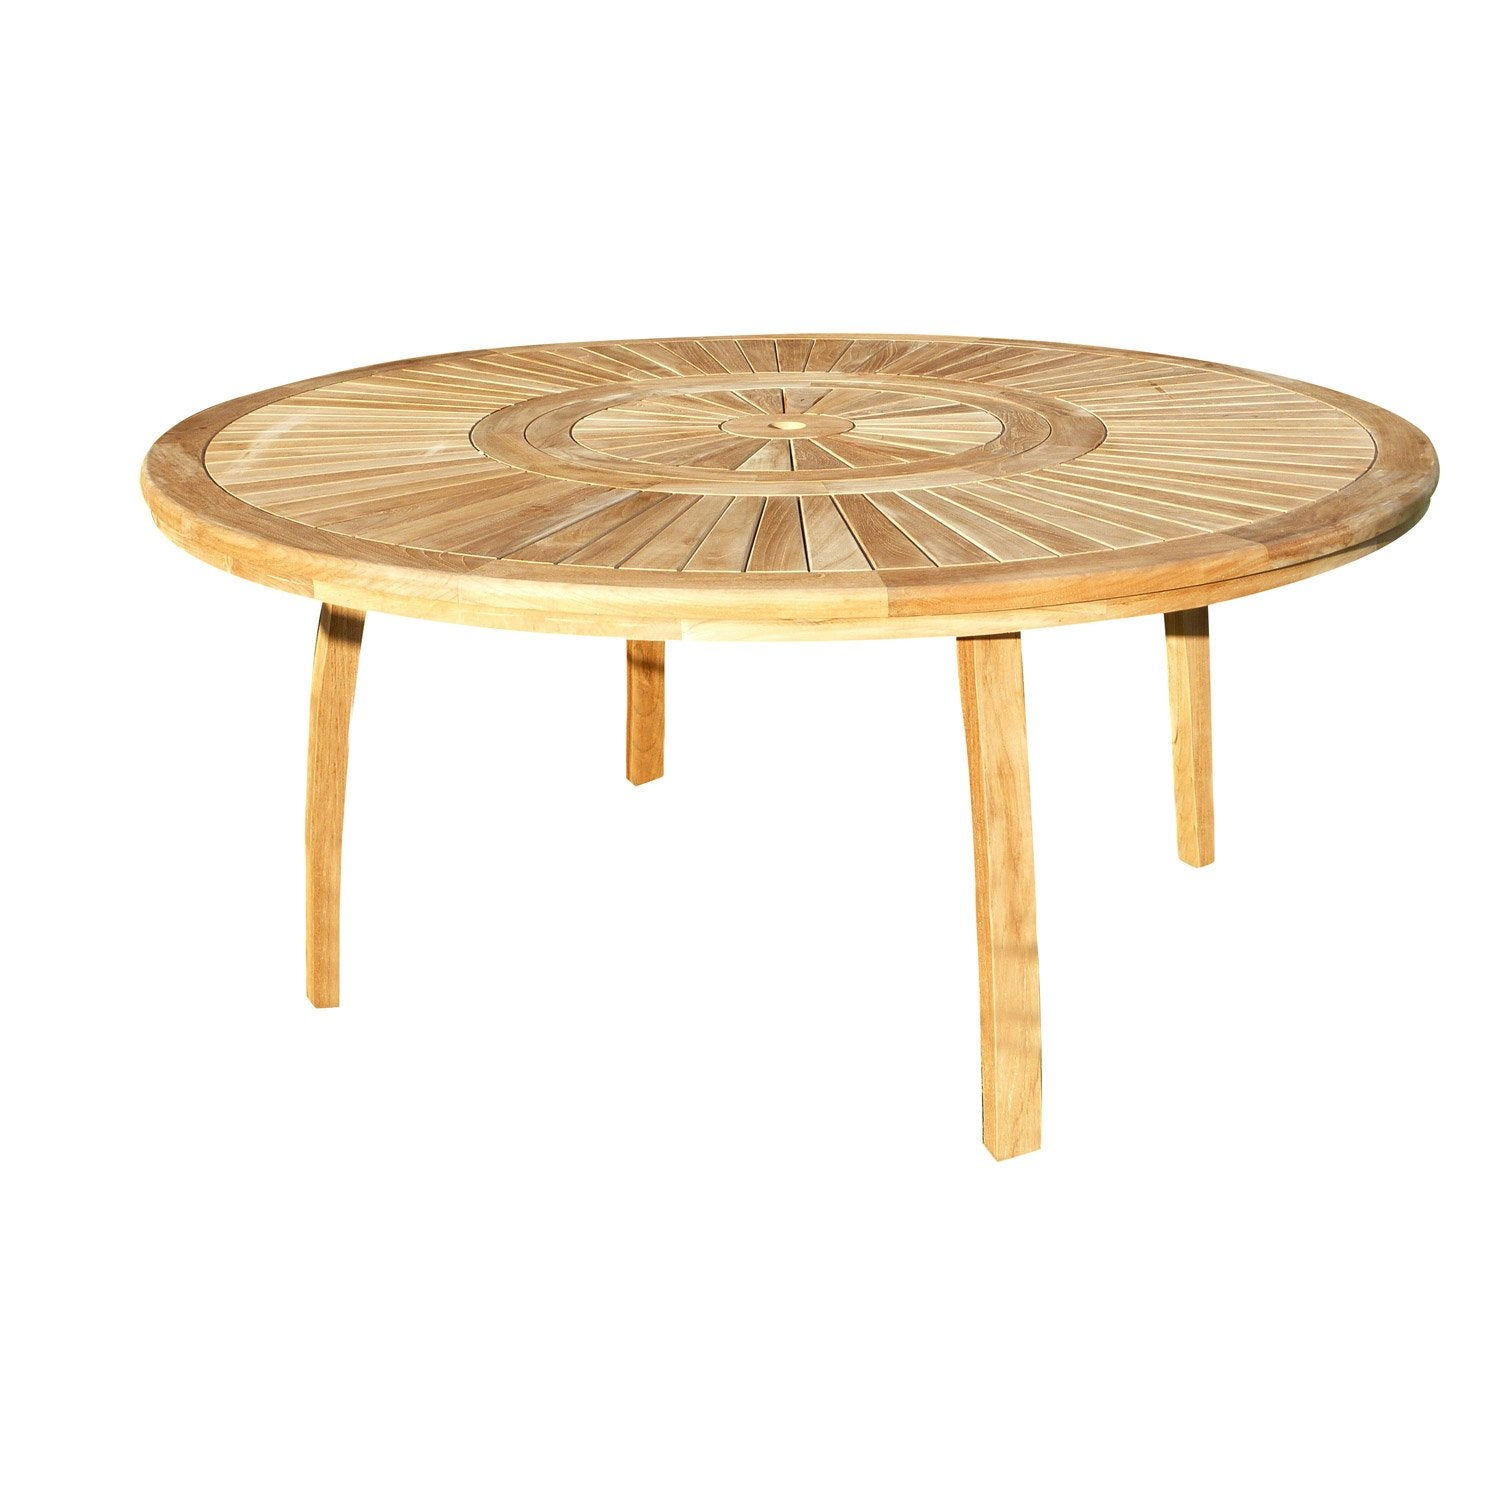 Table de jardin orion ronde naturel 8 personnes leroy merlin for Petite table ronde de jardin leclerc